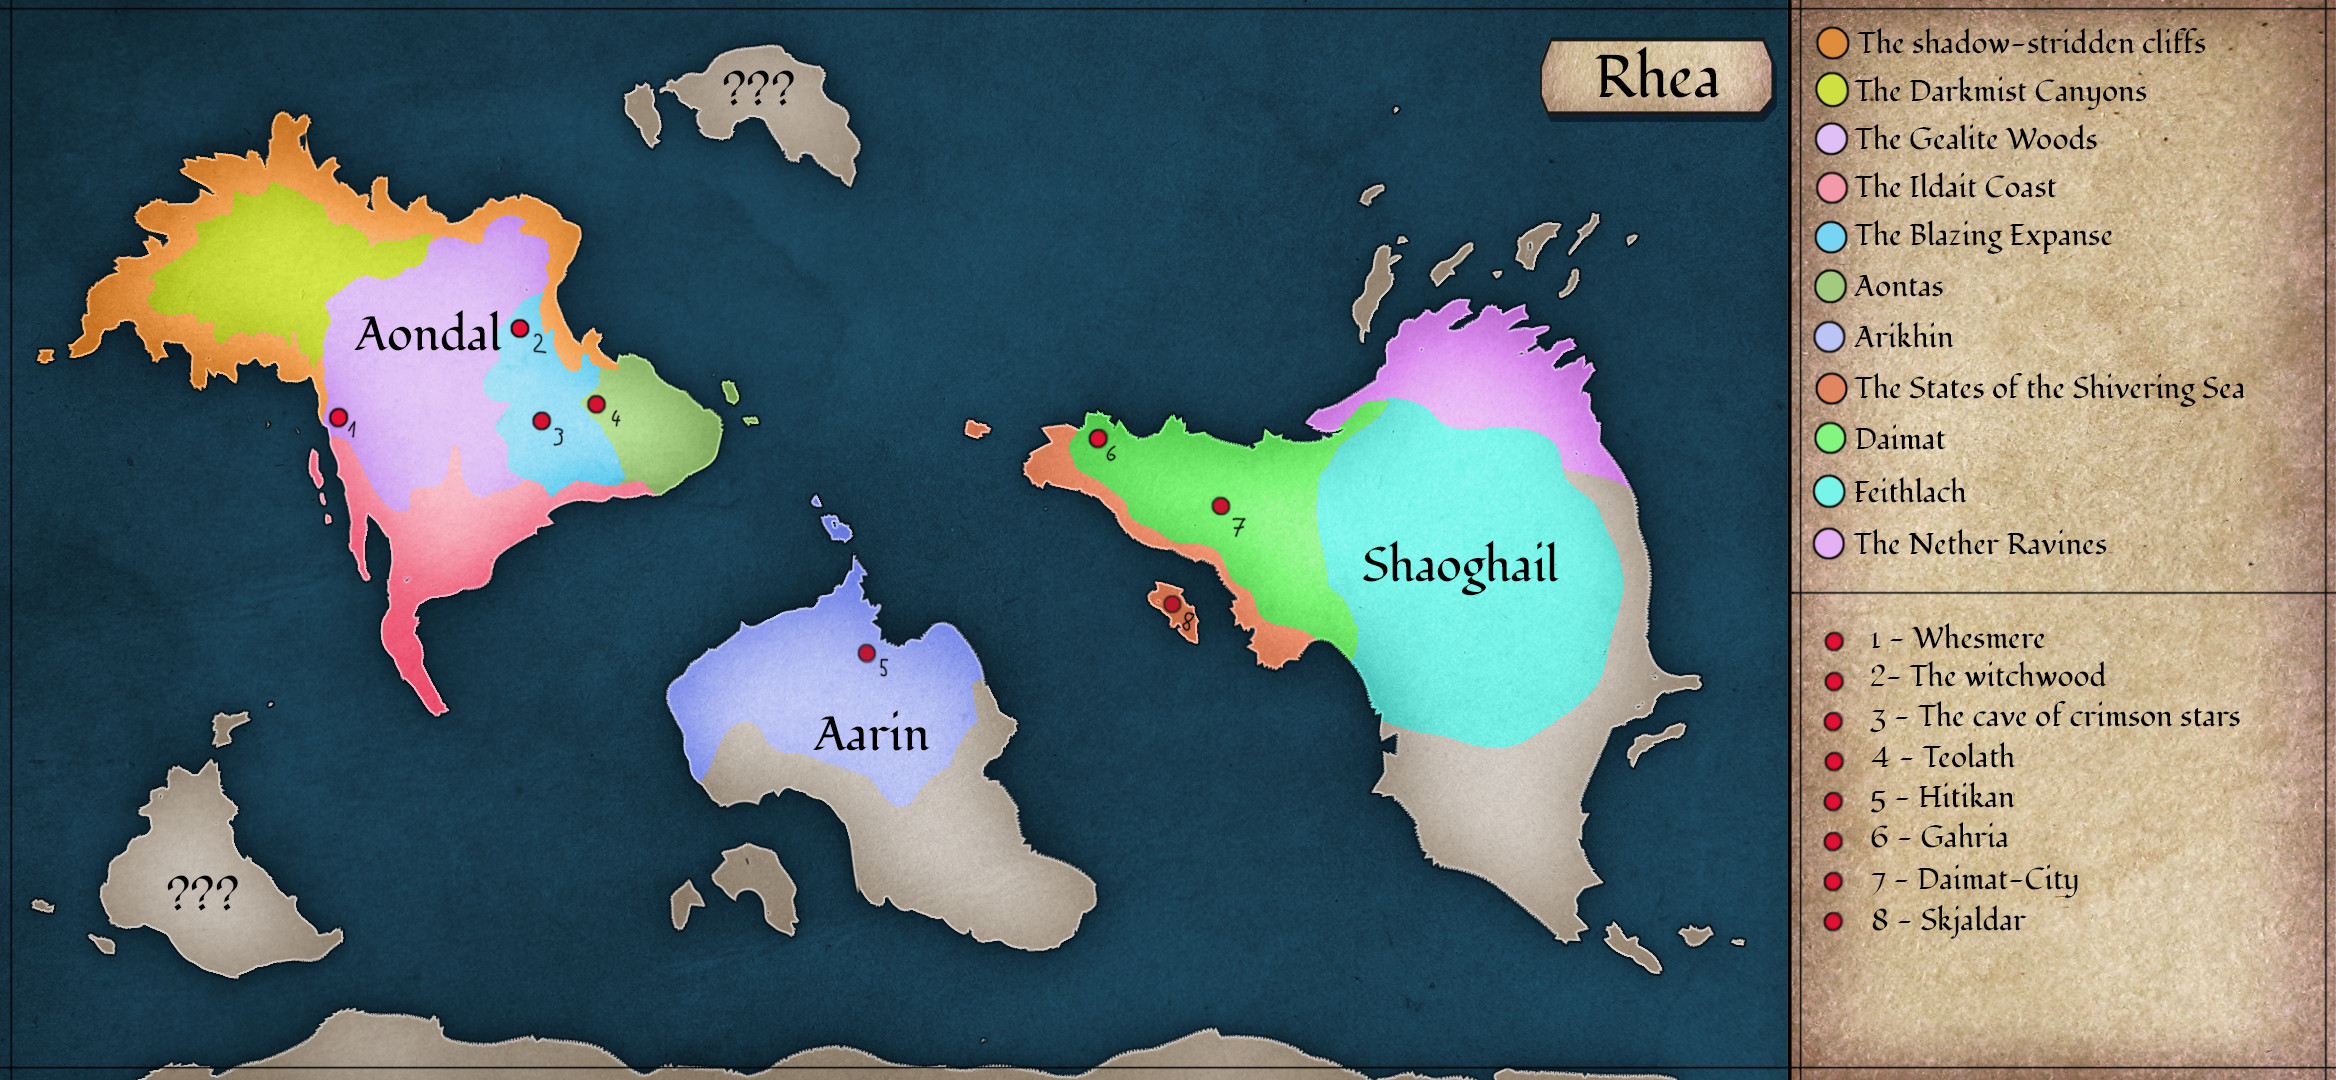 Labeled map of the fictional world of Rhea.